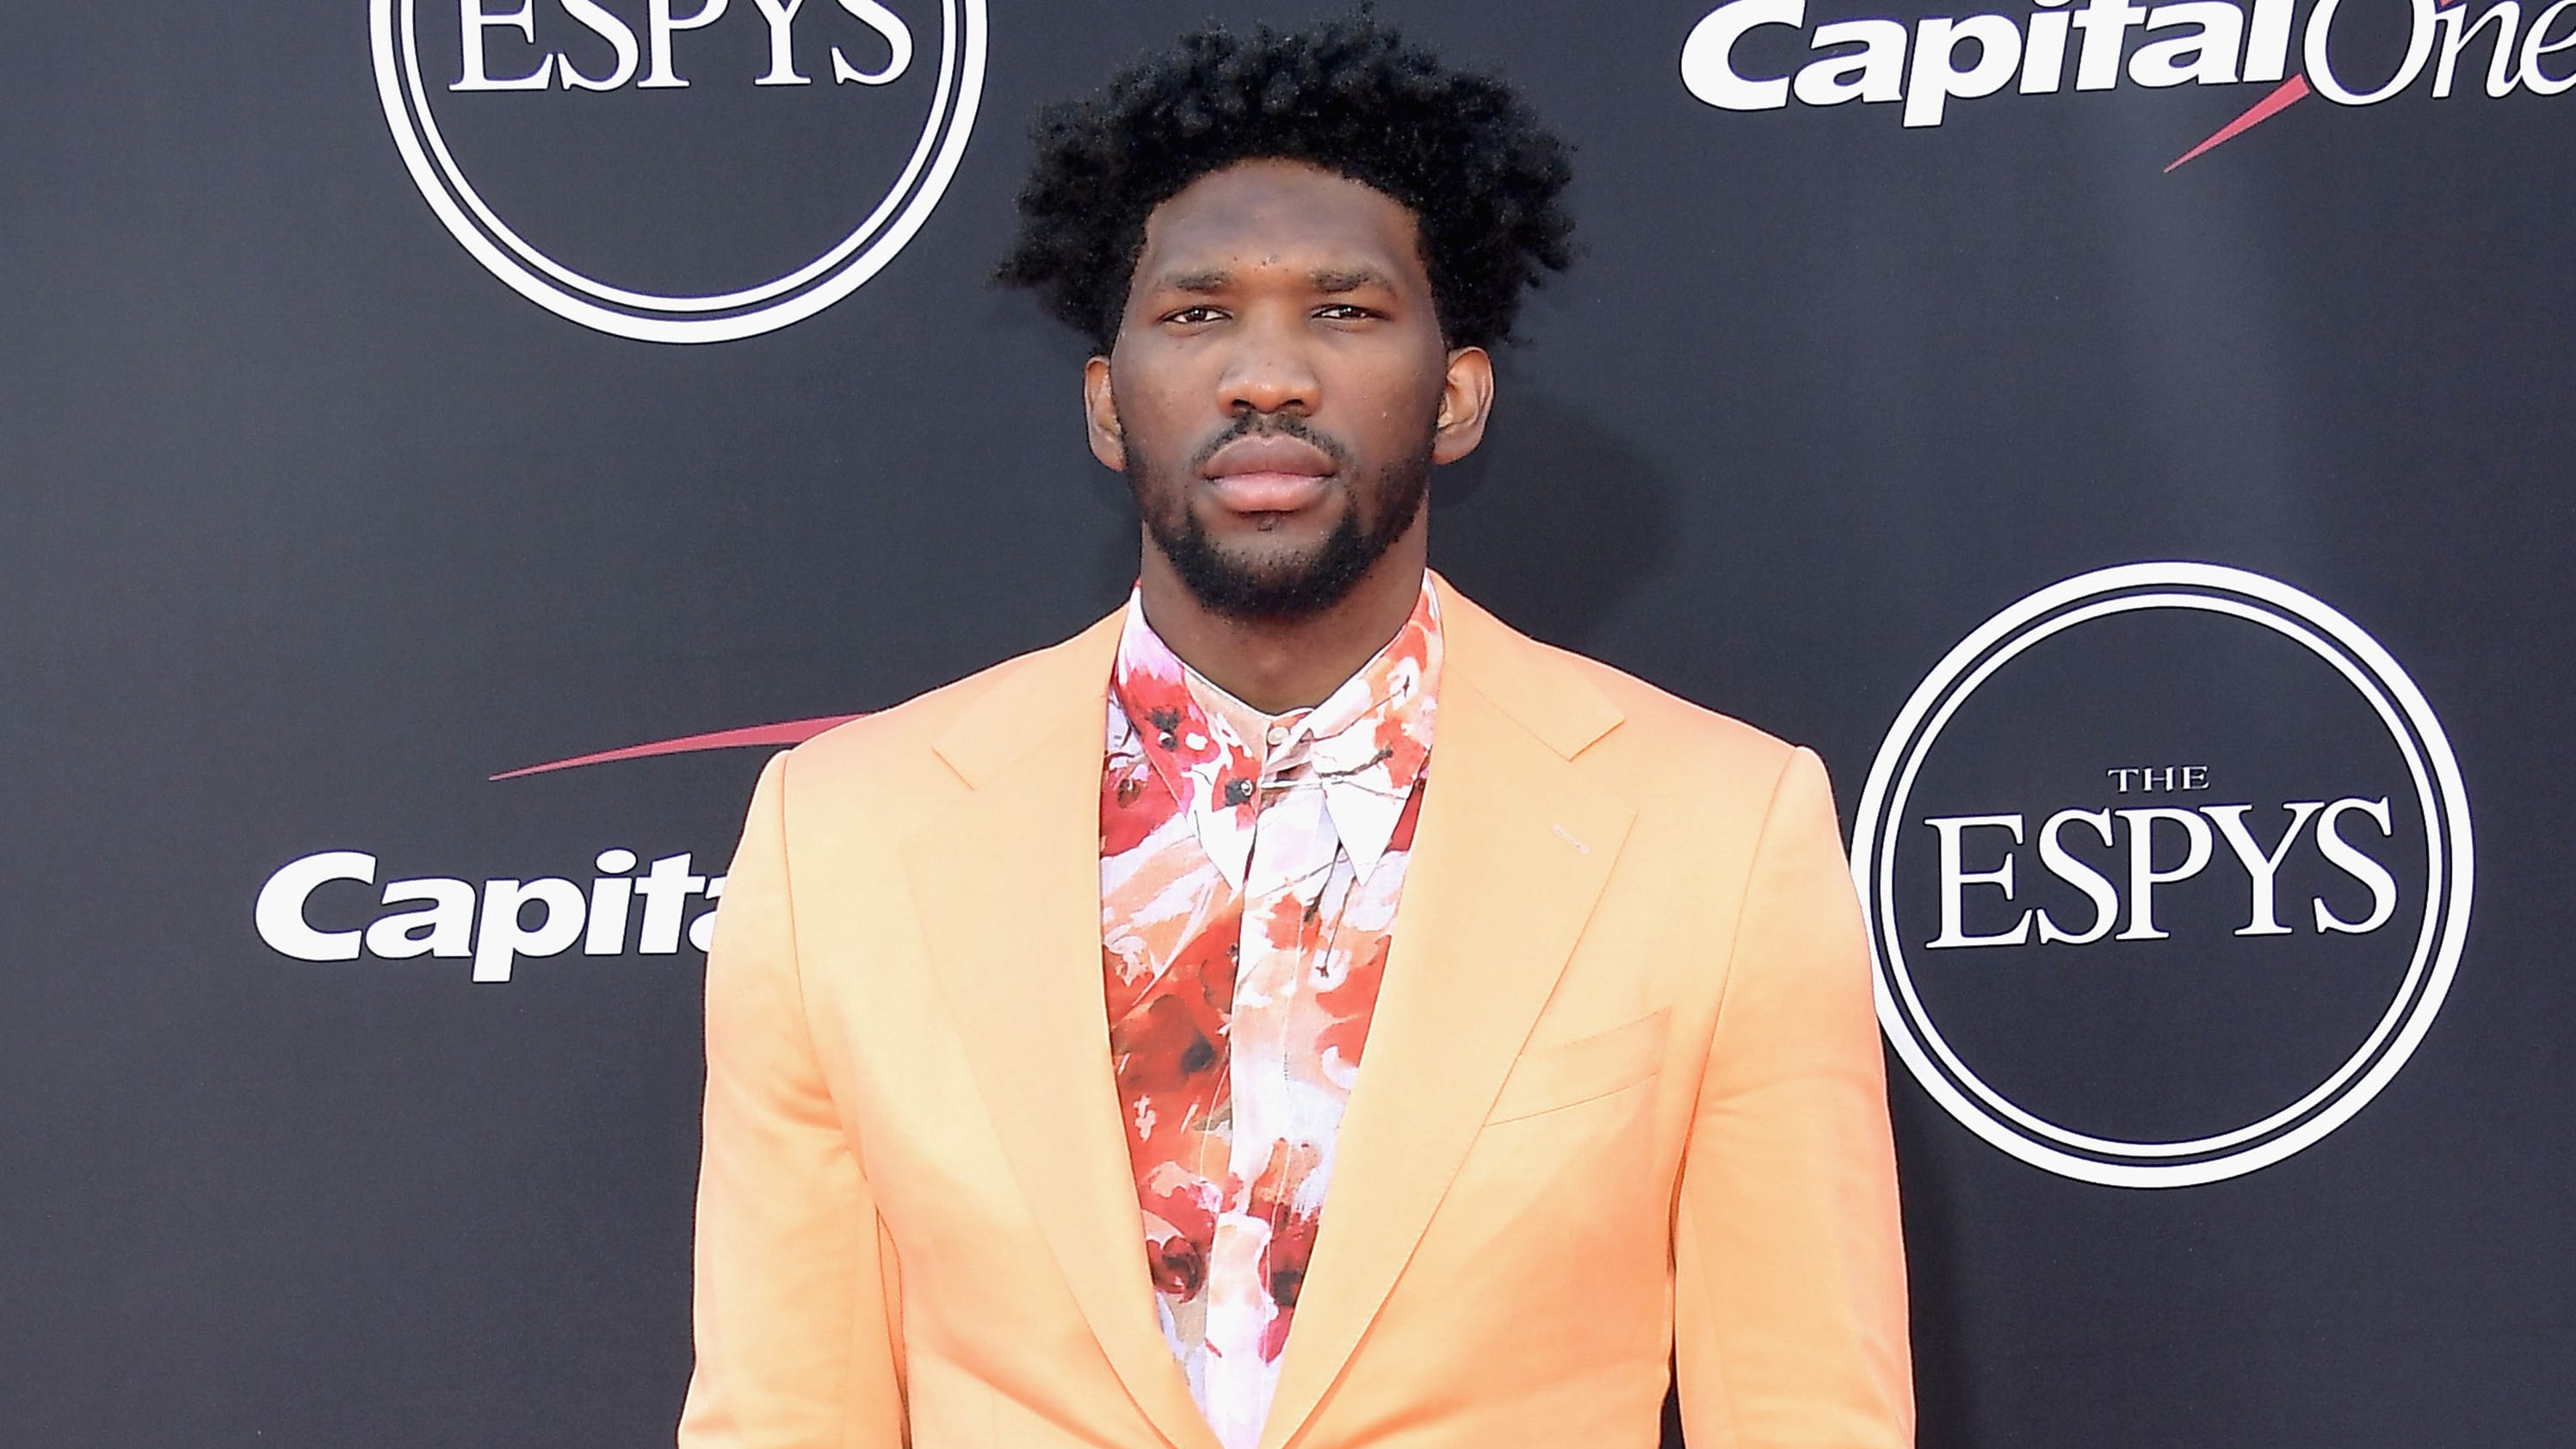 See some of the best ESPYS red carpet moments